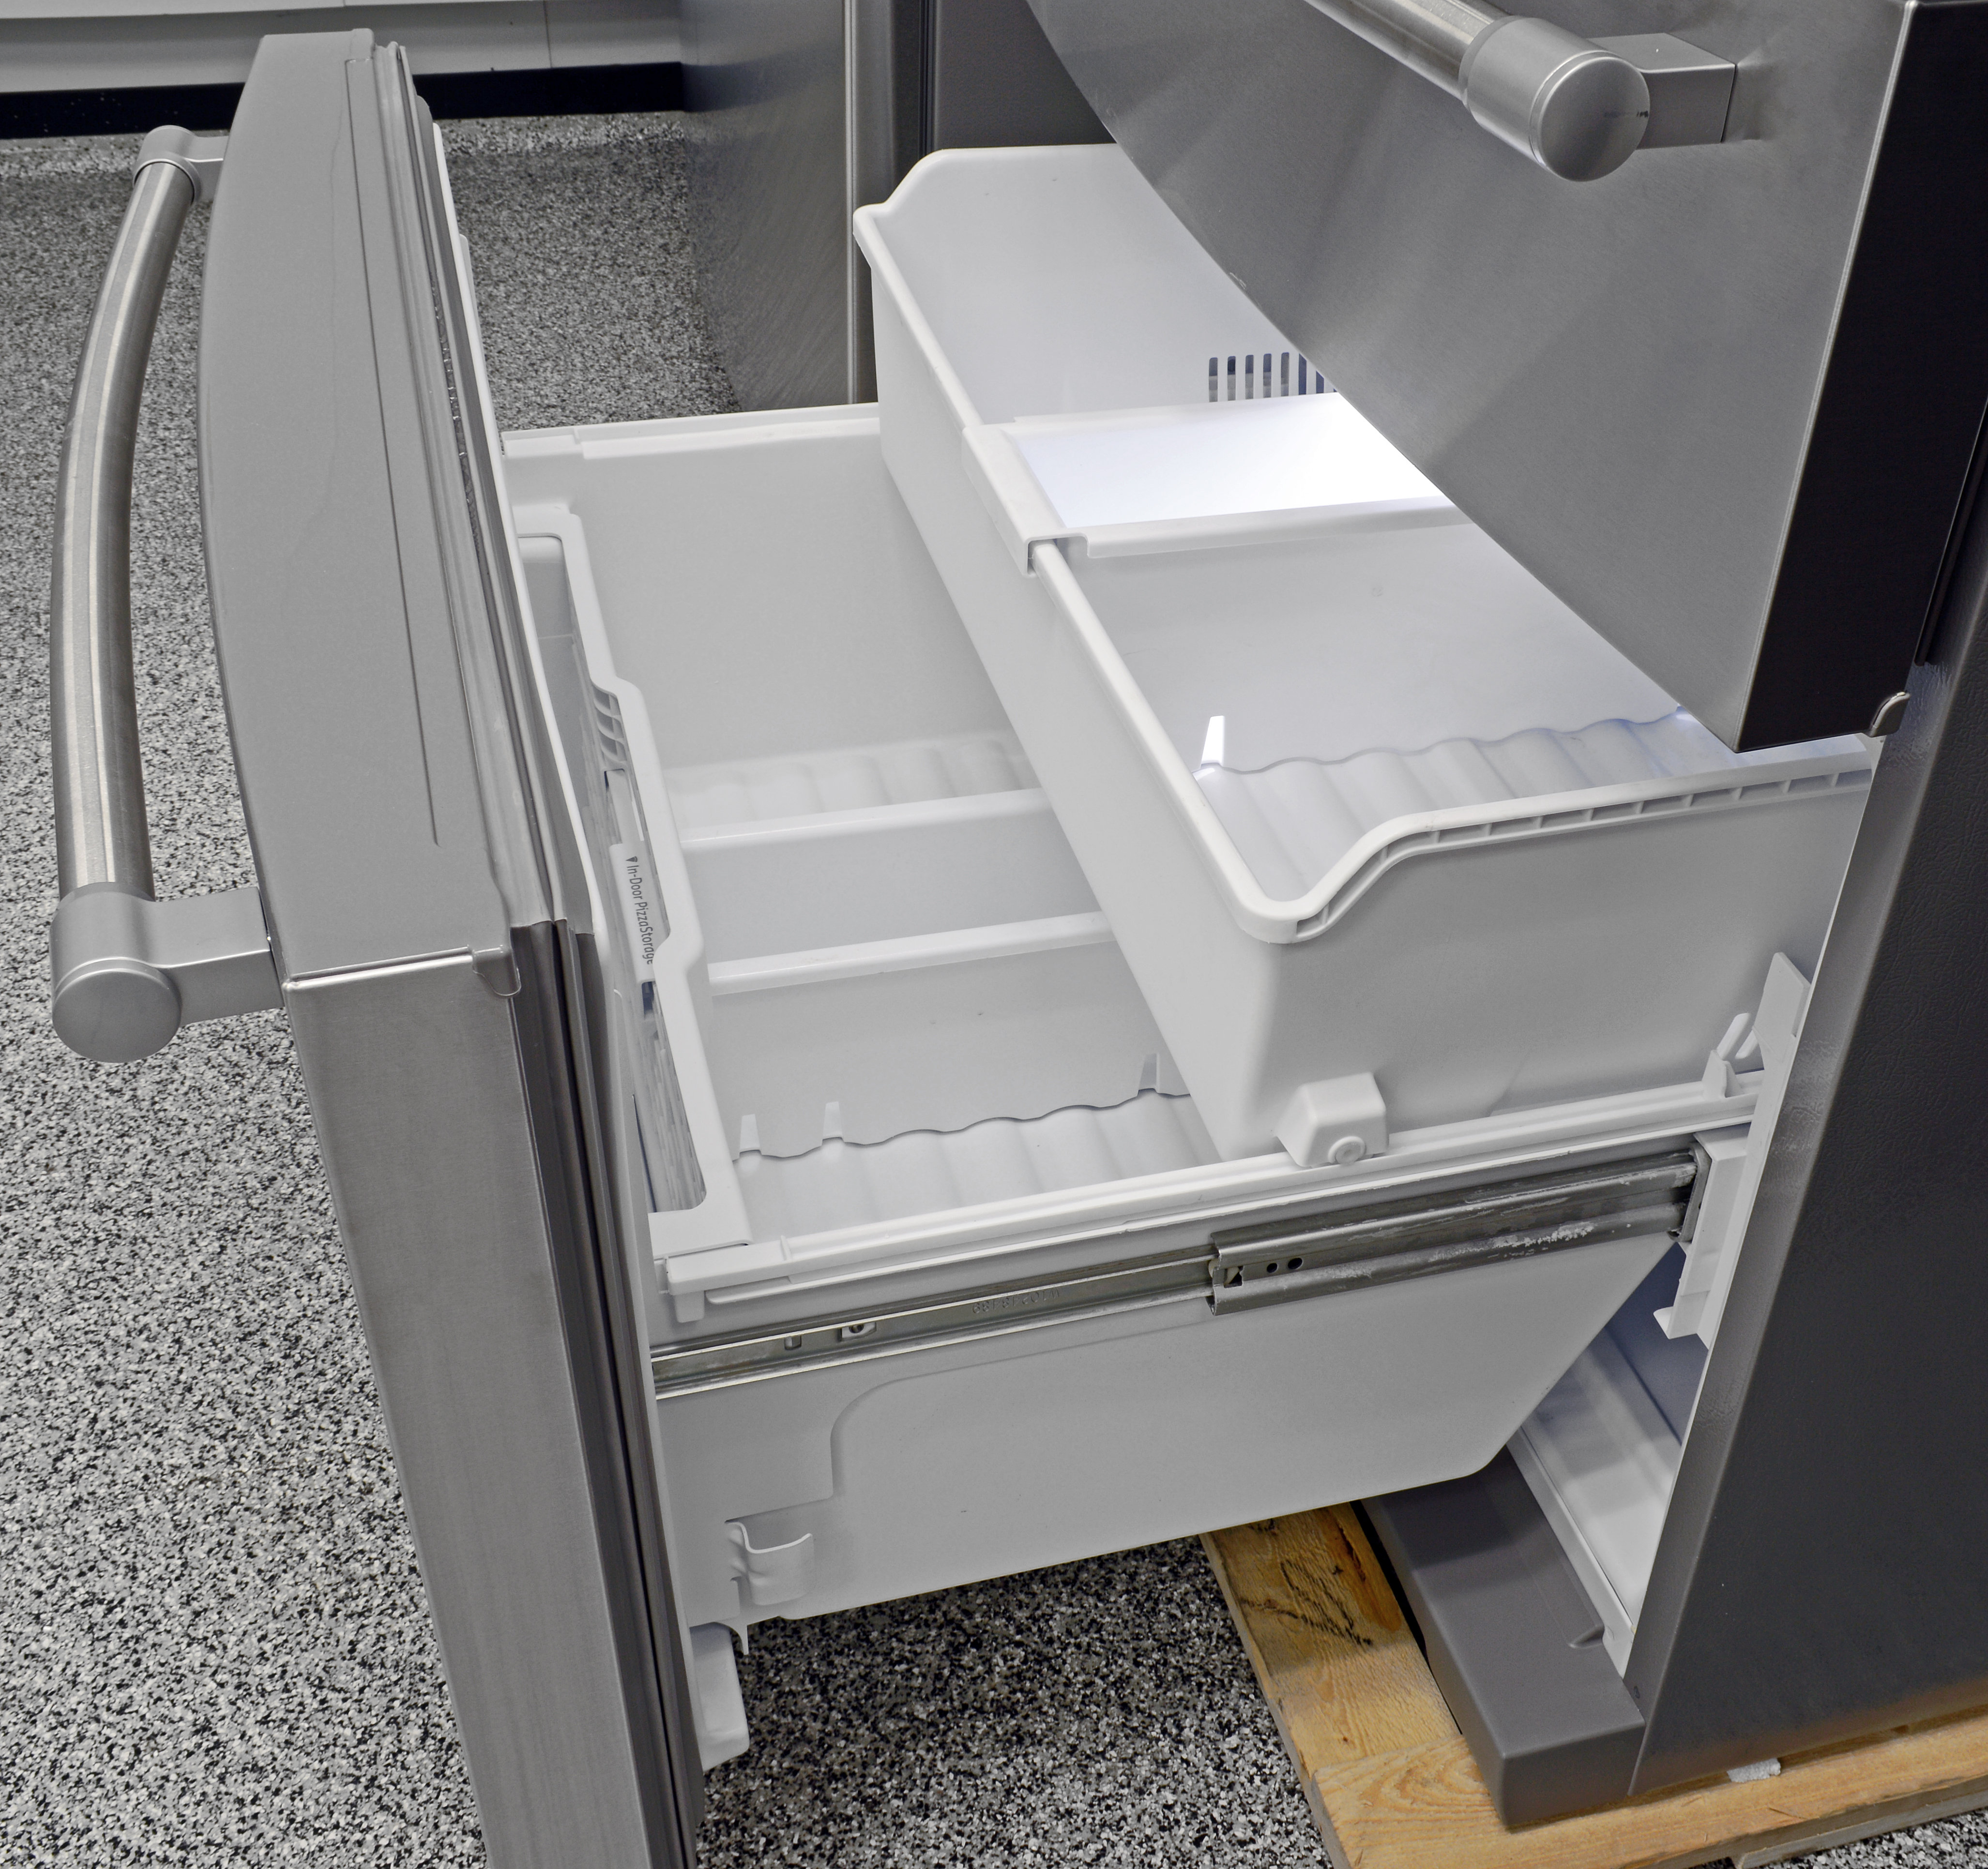 The Maytag MFX2876DRM's pull-out freezer is very traditional in its design.